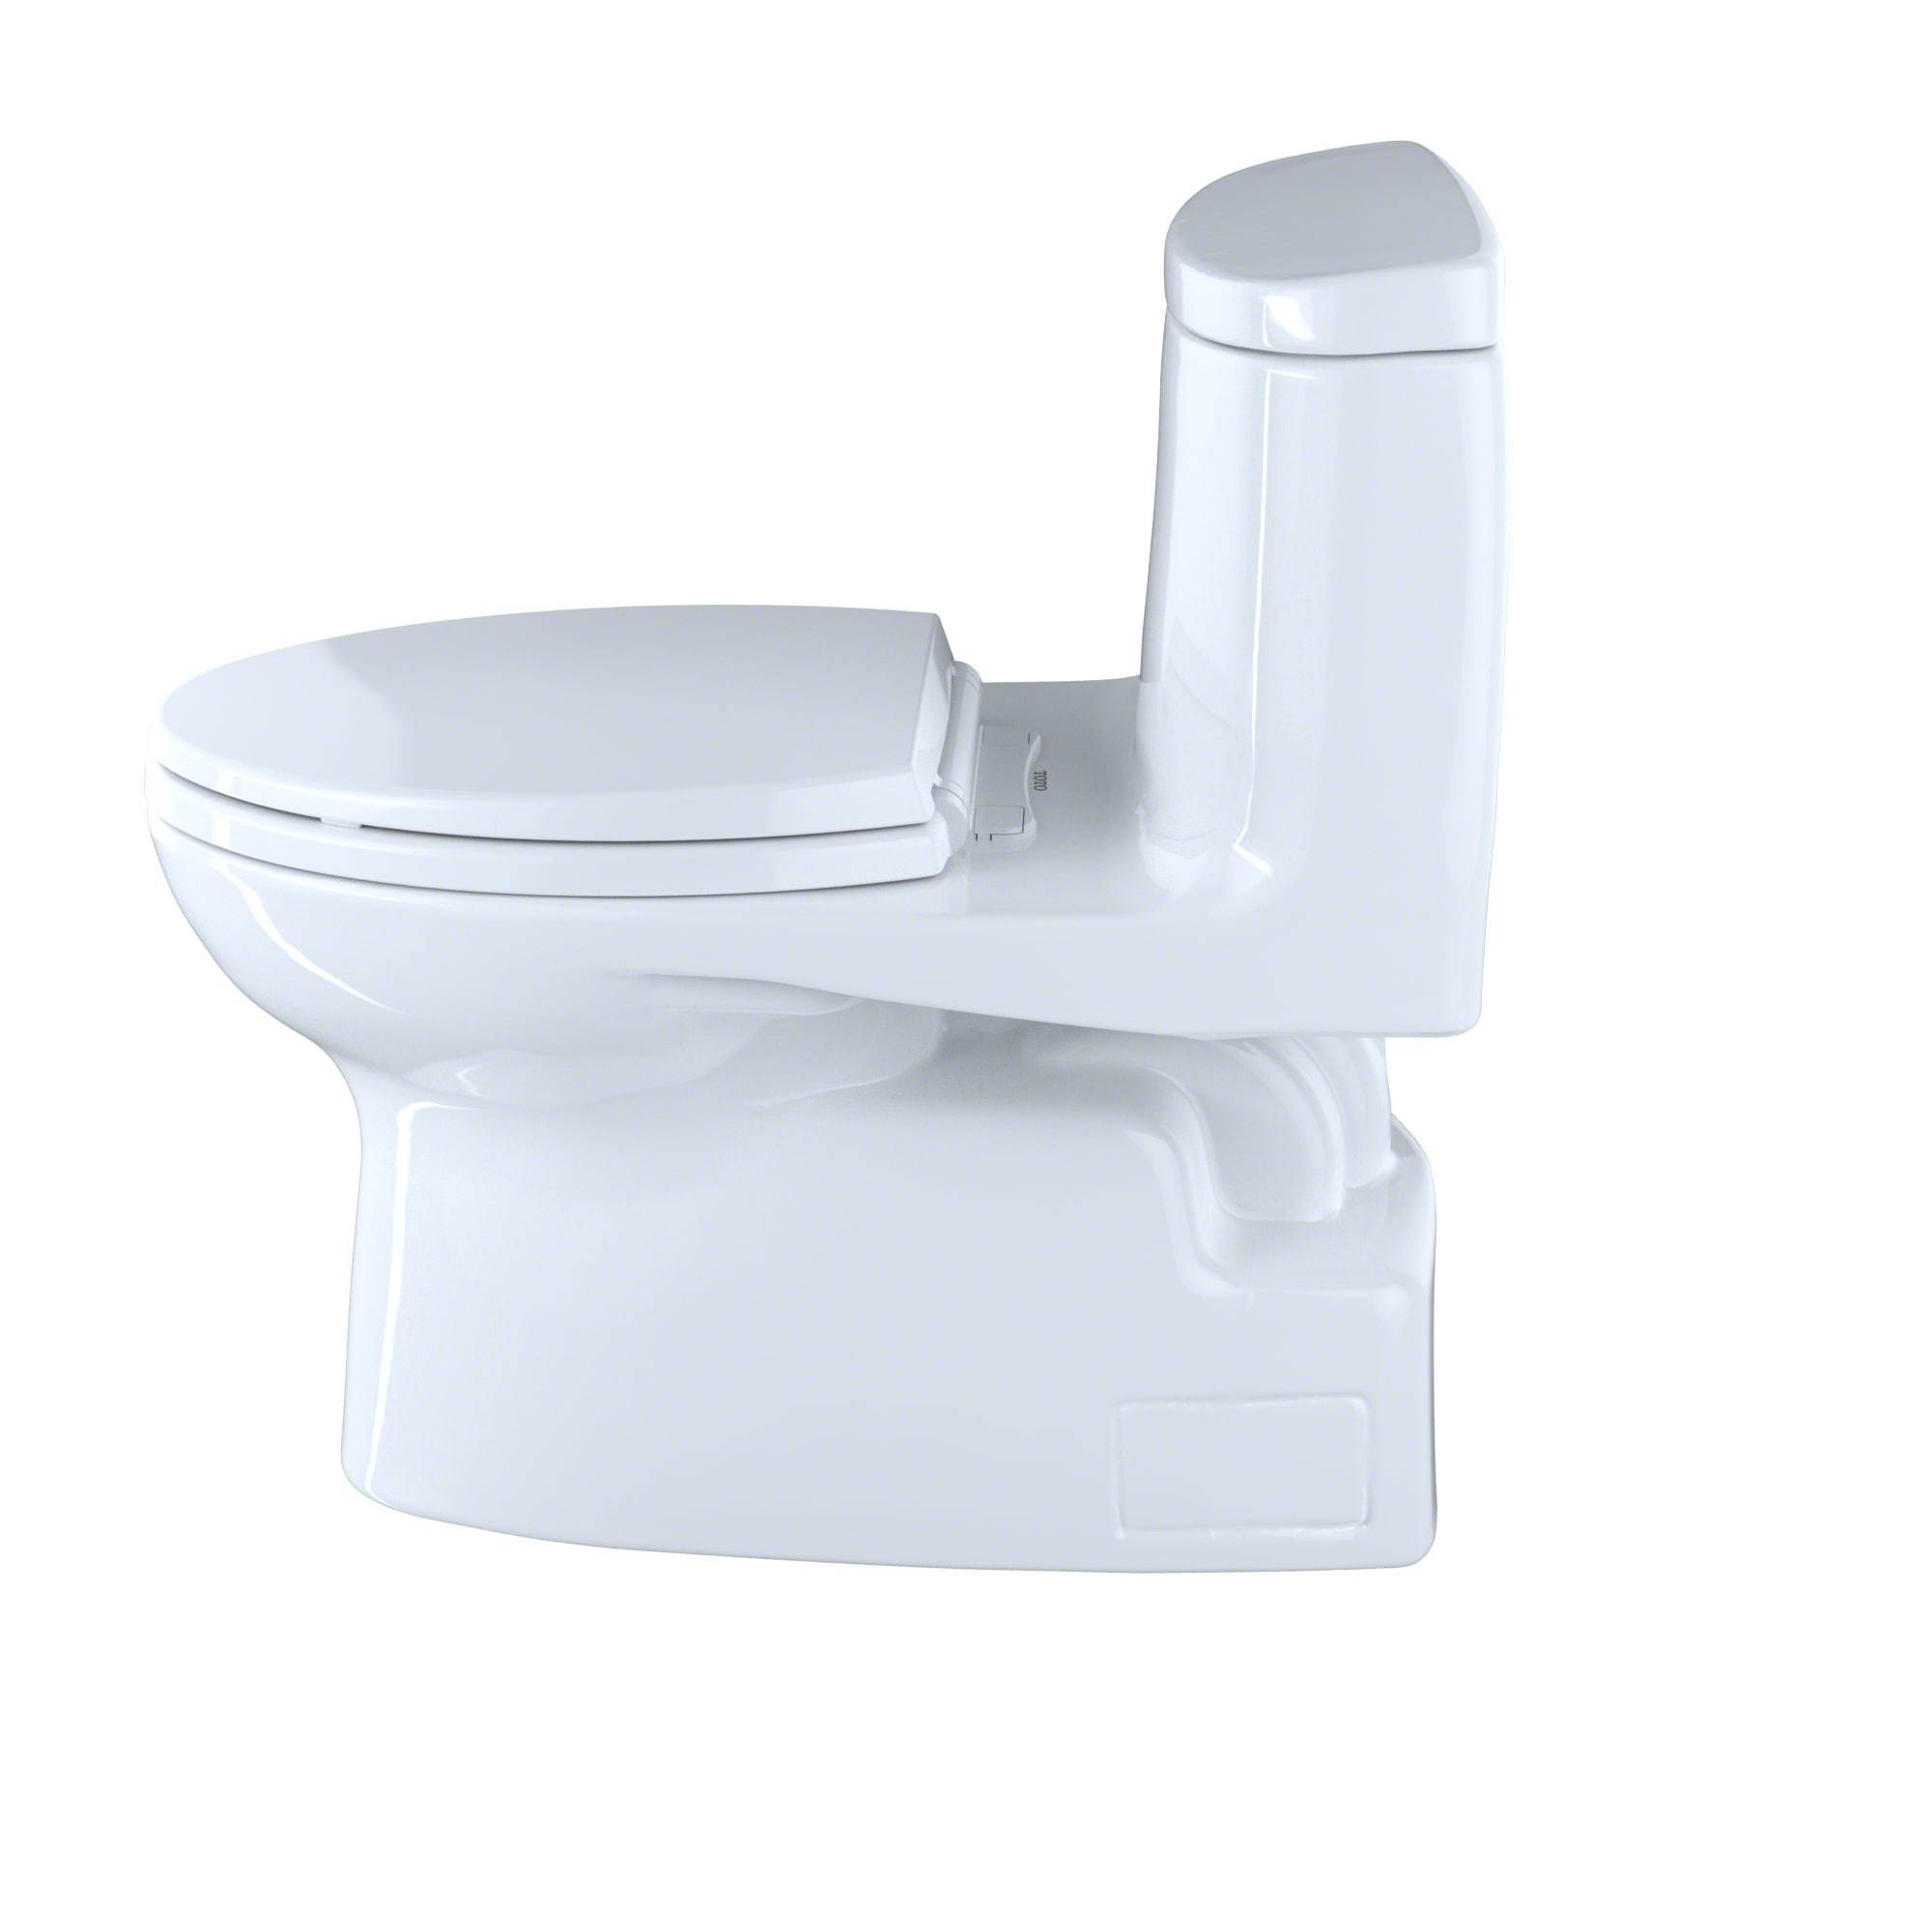 Shop Toto Carlyle II White 1-piece Elongated Toilet - Free Shipping ...